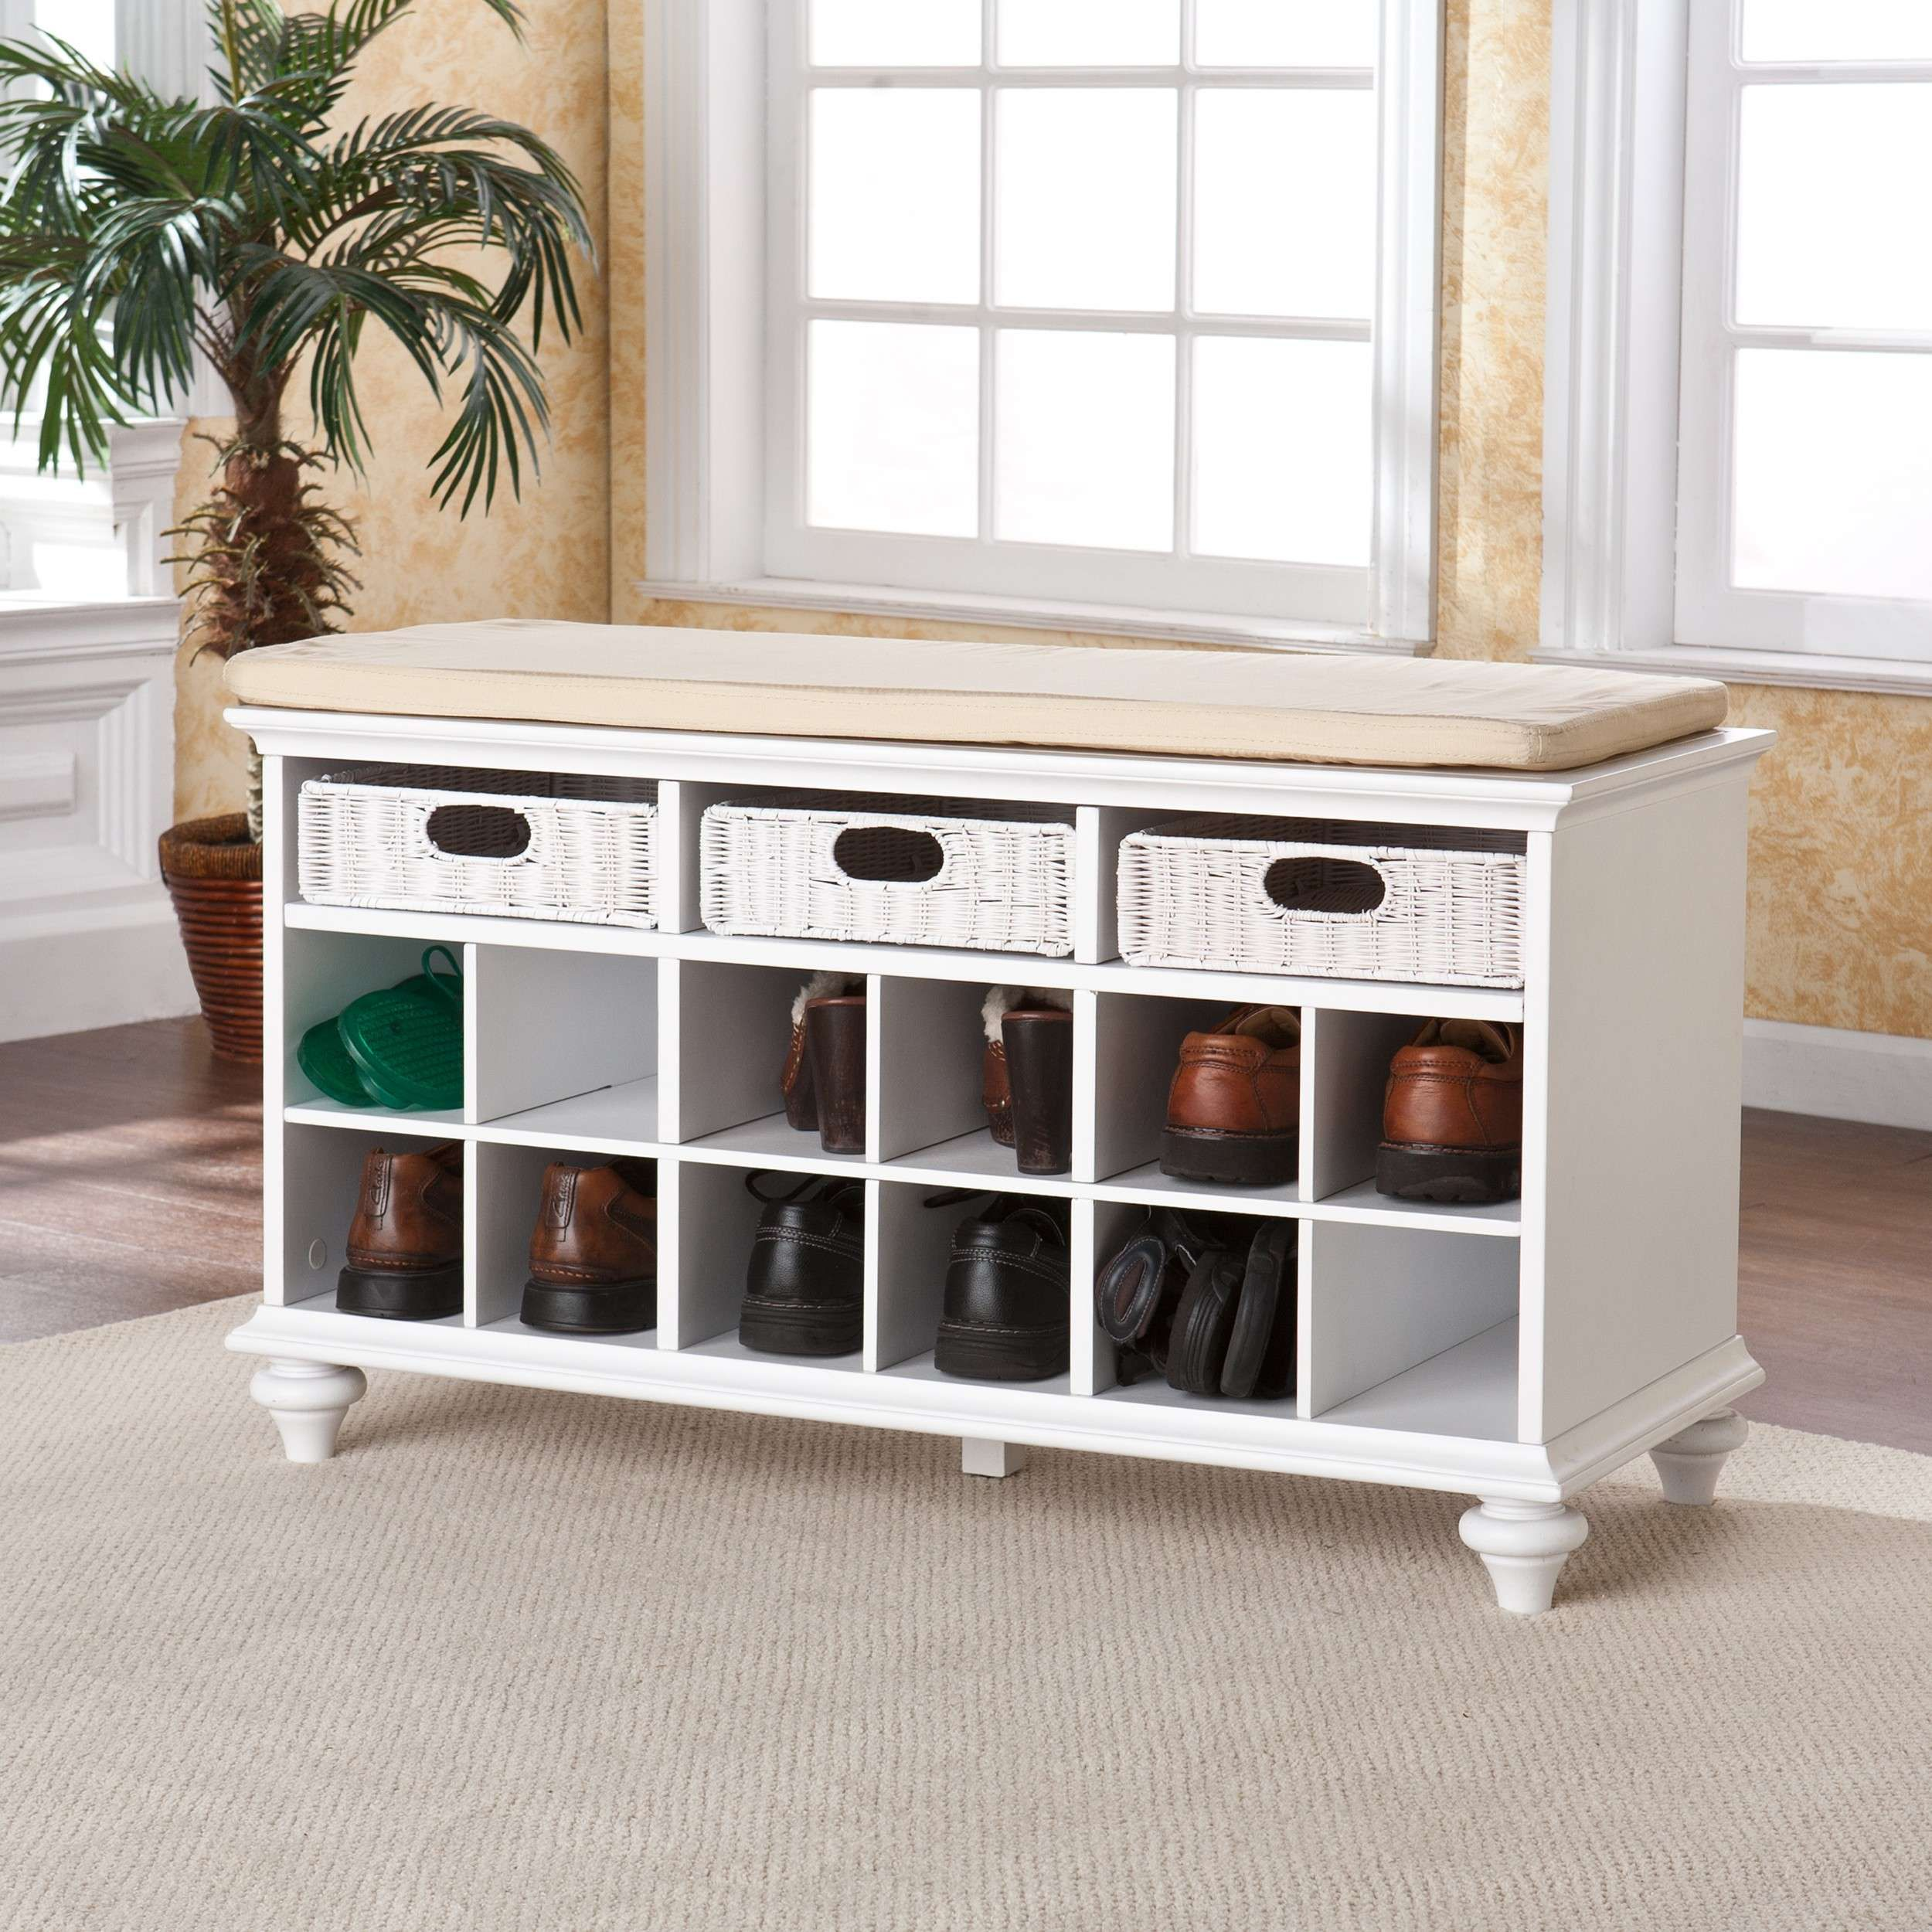 Chelmsford White Entry Shoe Storage Bench White Storage Bench Bench With Shoe Storage Shoe Storage Bench Entryway